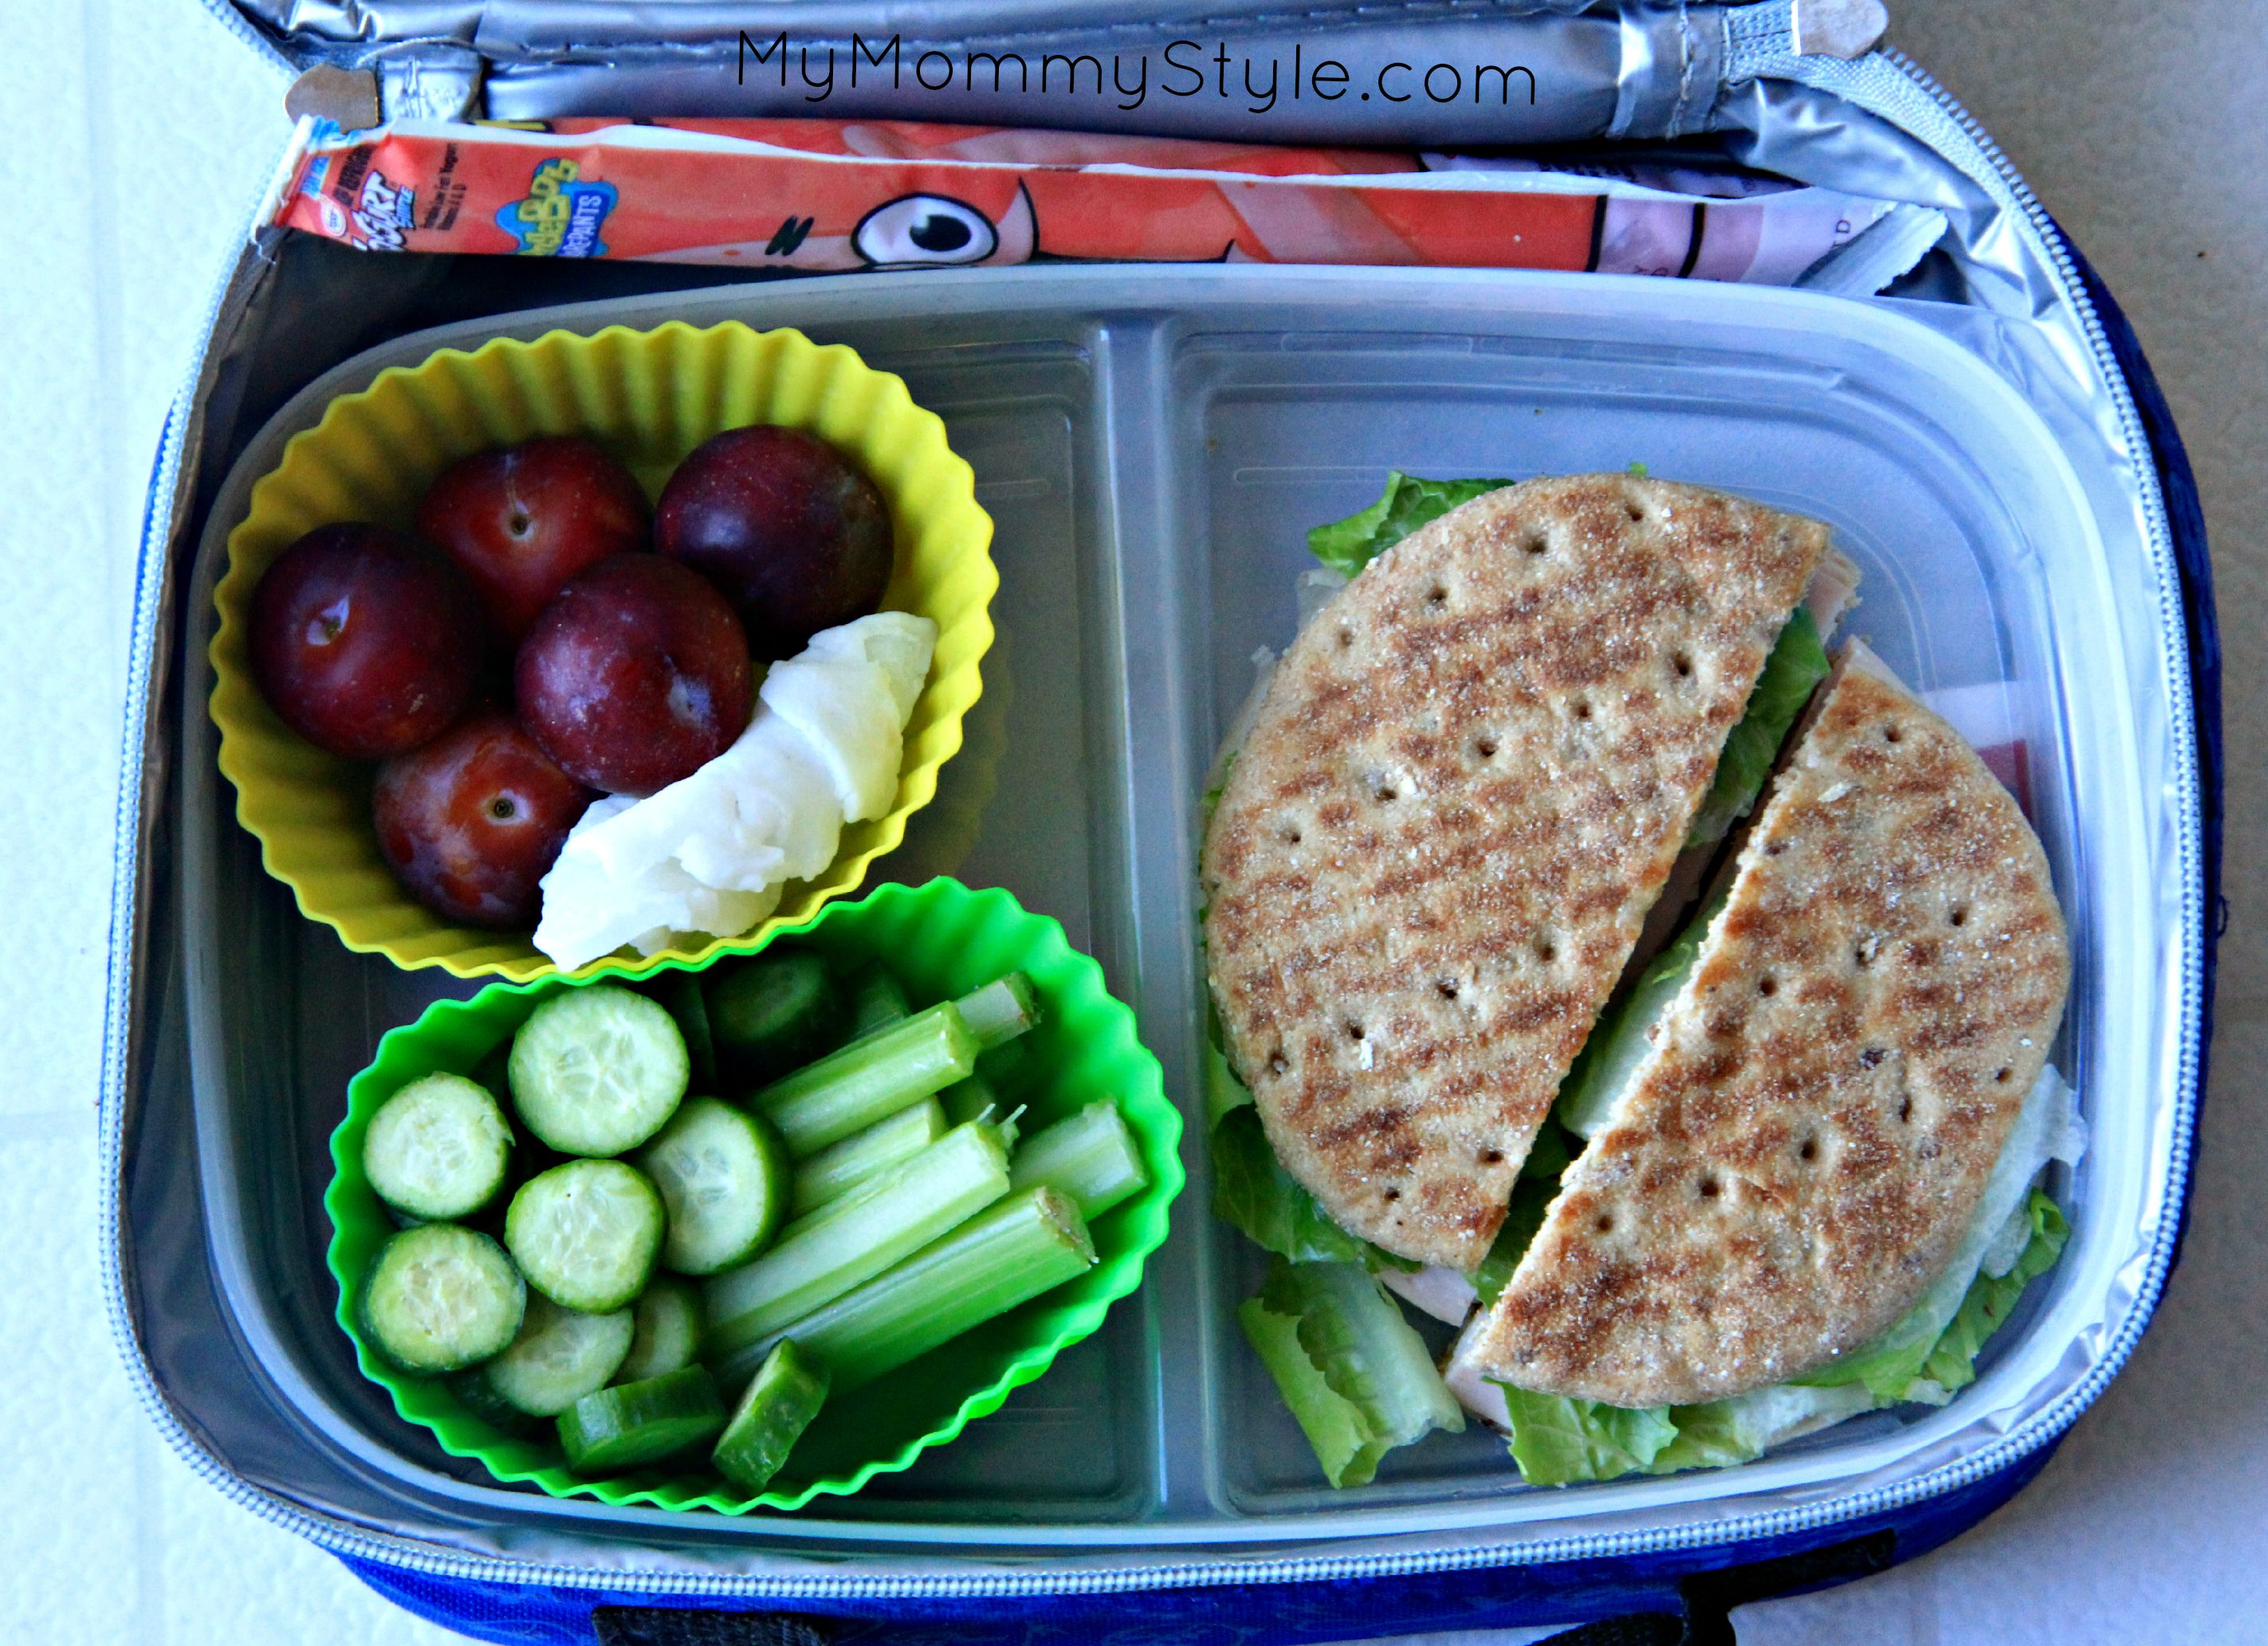 Healthy school lunches for teens school lunch healthy lunch lunch healthy school lunches for teens school lunch healthy lunch lunch forumfinder Gallery